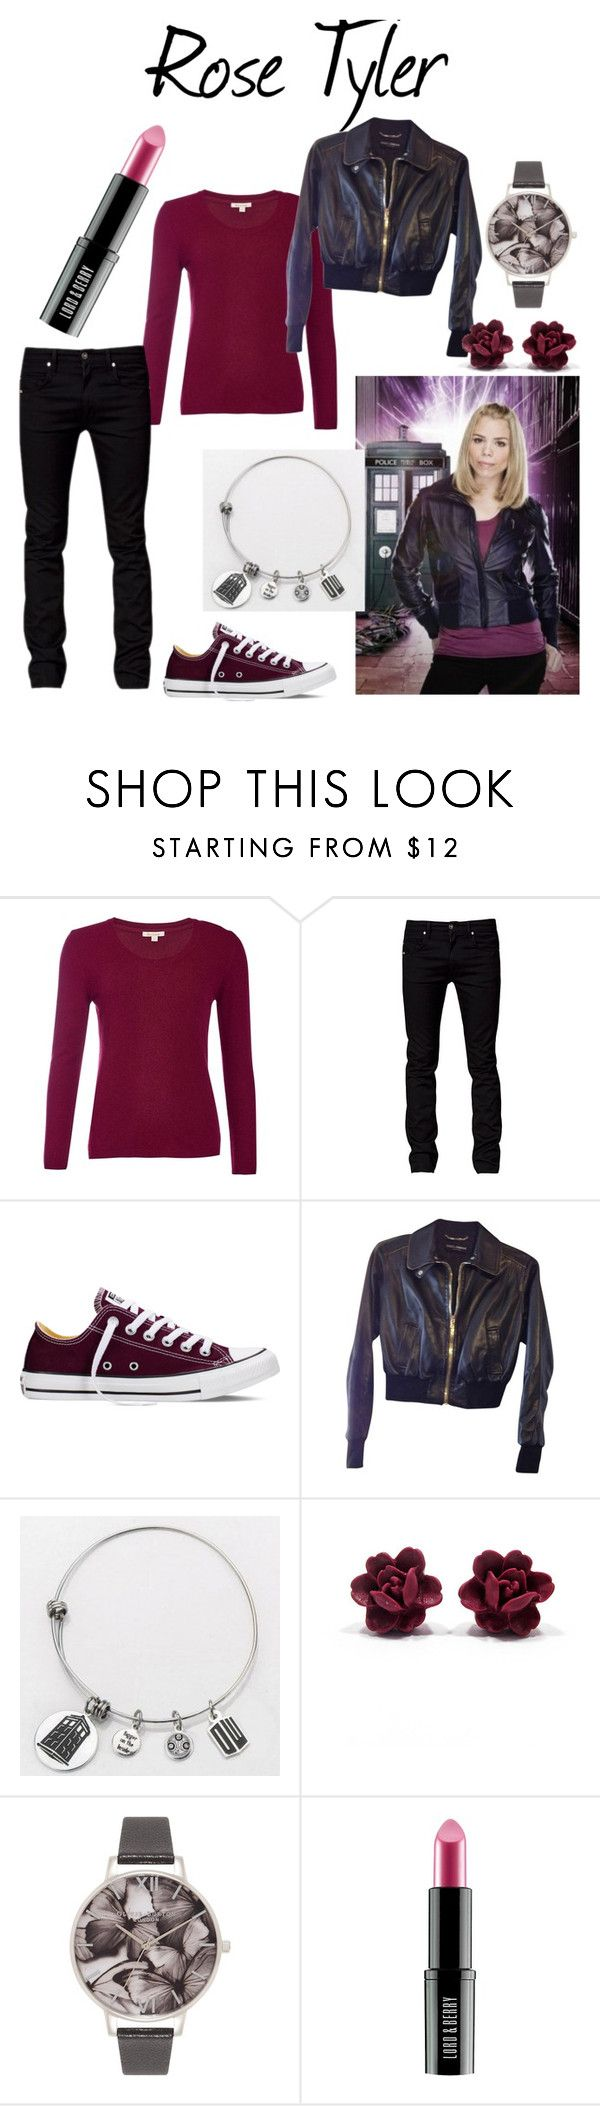 Companions: Rose Tyler by jas67angel on Polyvore featuring Barbour, Dolce&Gabbana, Tiger of Sweden, Converse, Olivia Burton, Lord & Berry, women's clothing, women's fashion, women and female